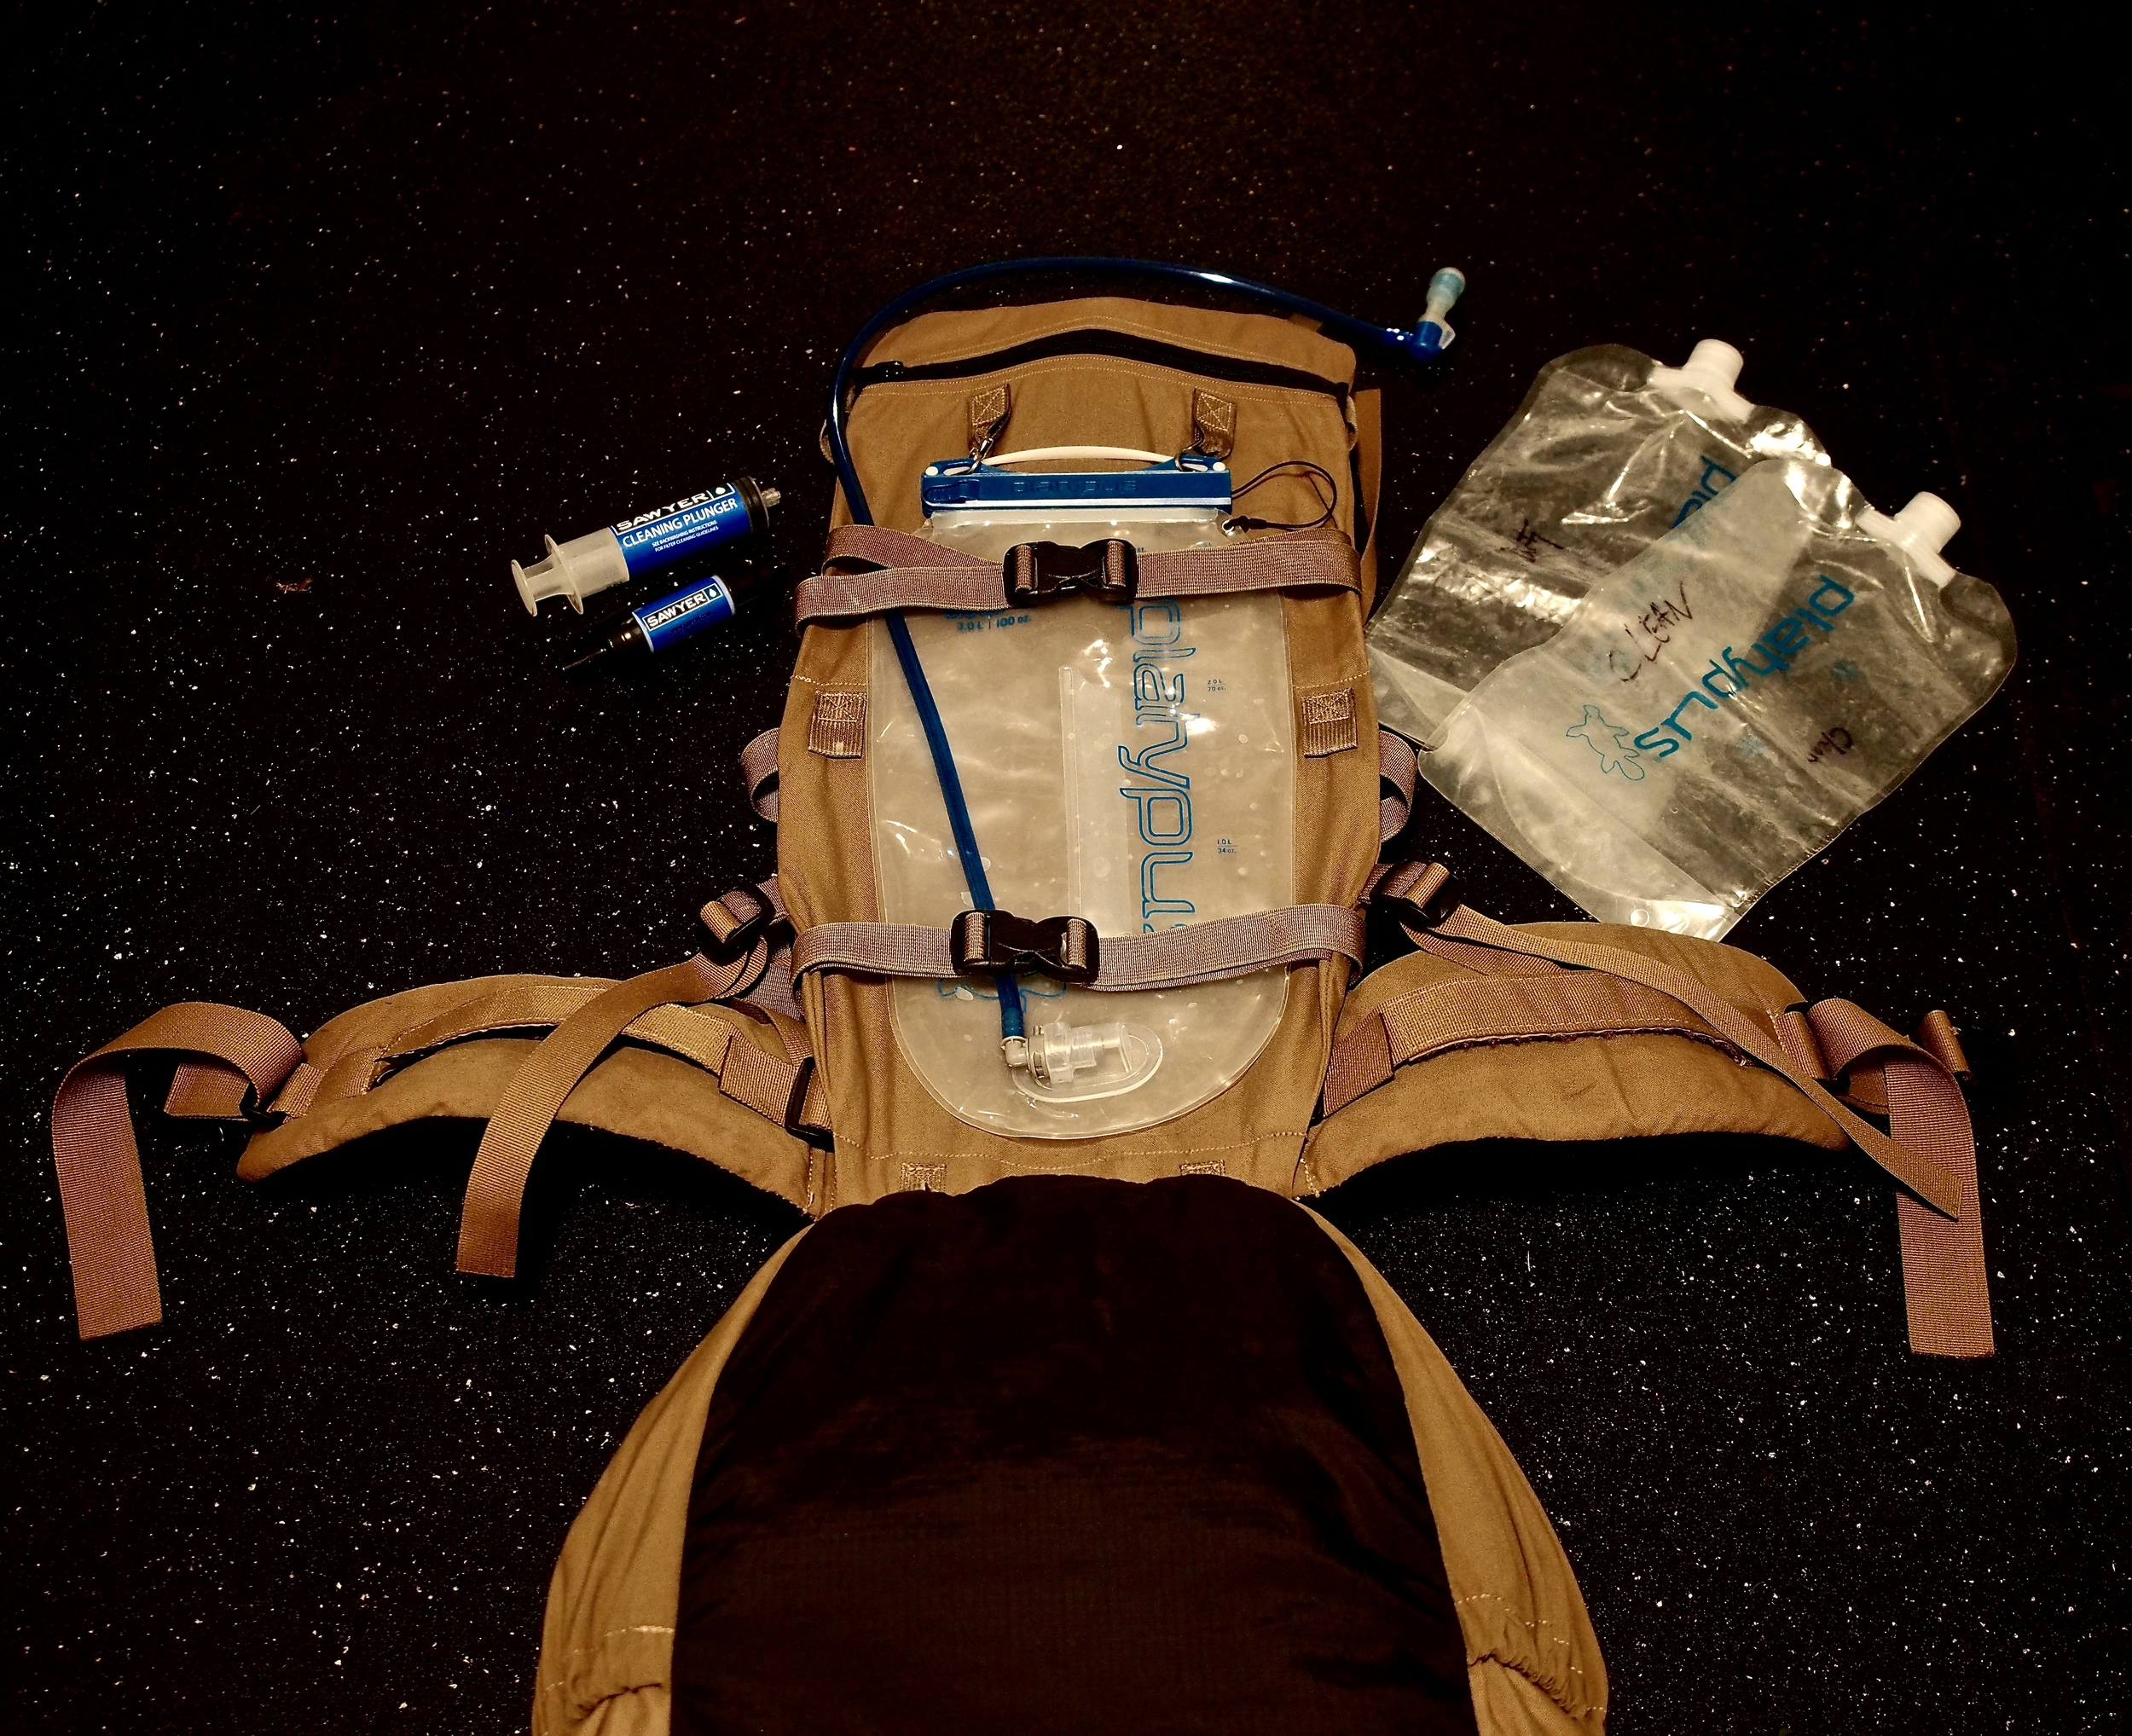 My water system consists of a 3 liter Platypus bladder, two 2 liter platypus bags, and a Sawyer Mini Water Filter. The pack you see here is the Exo Mountain Gear 3500.